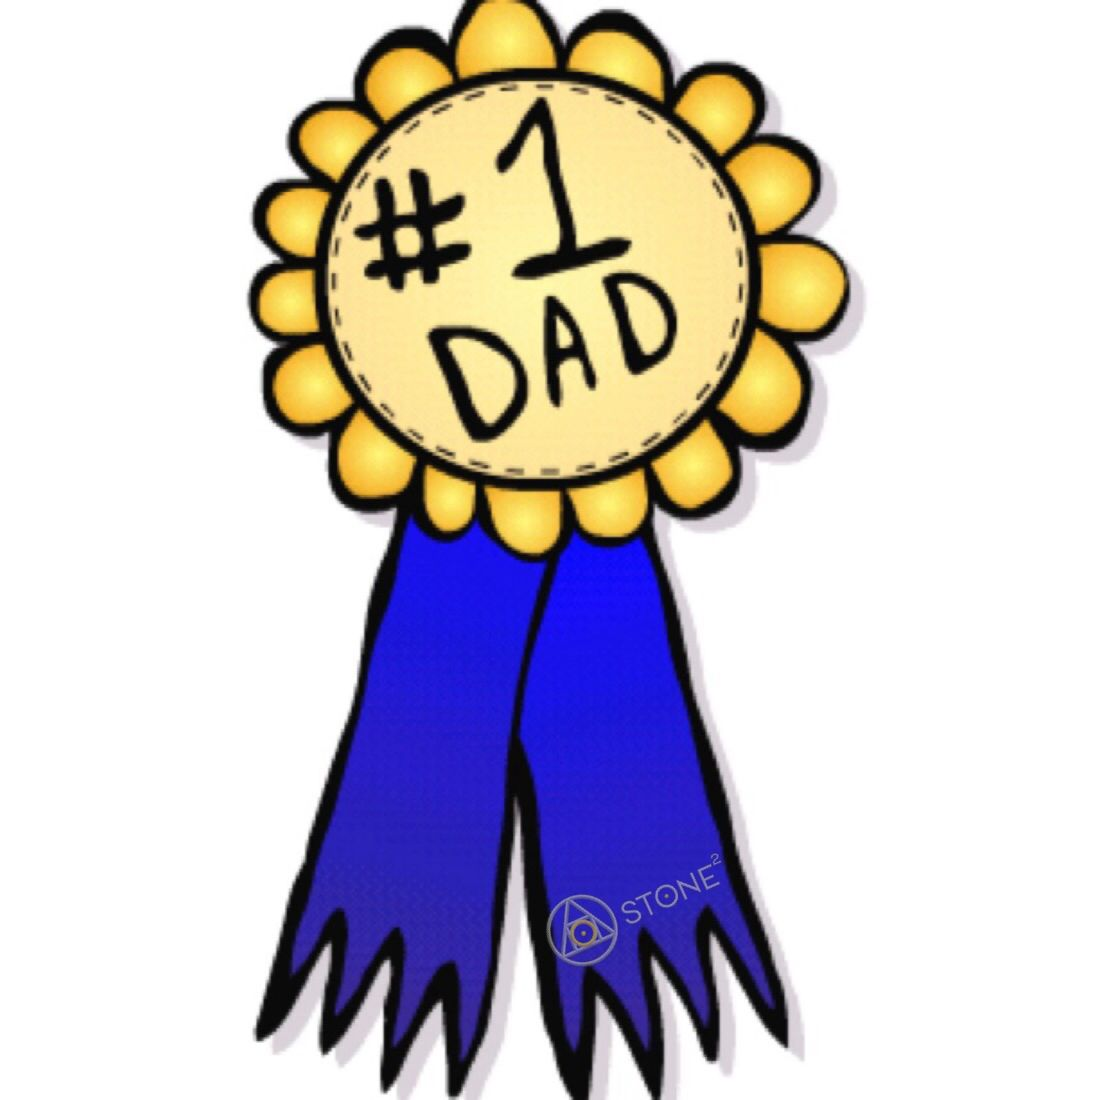 1100x1100 1dad Ribbon